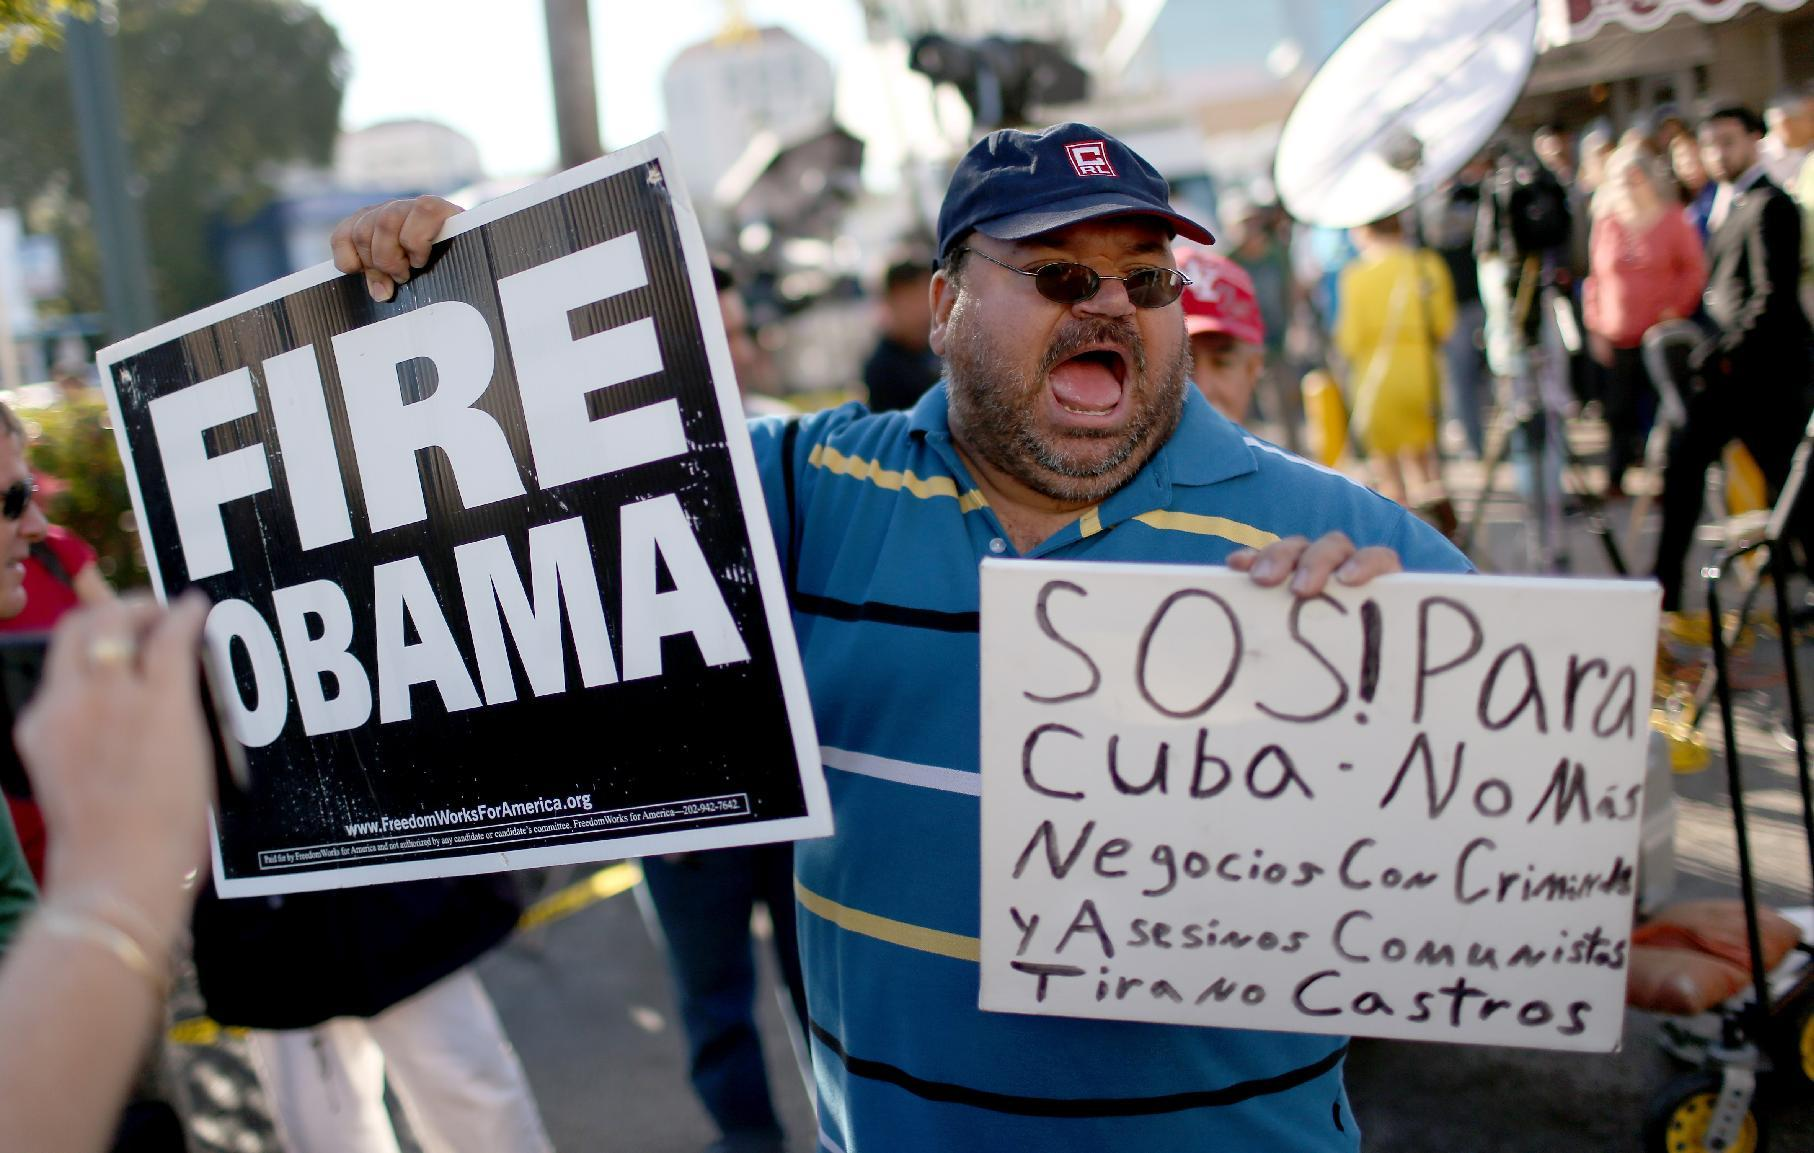 Cubans in Miami slam 'betrayal' after historic move